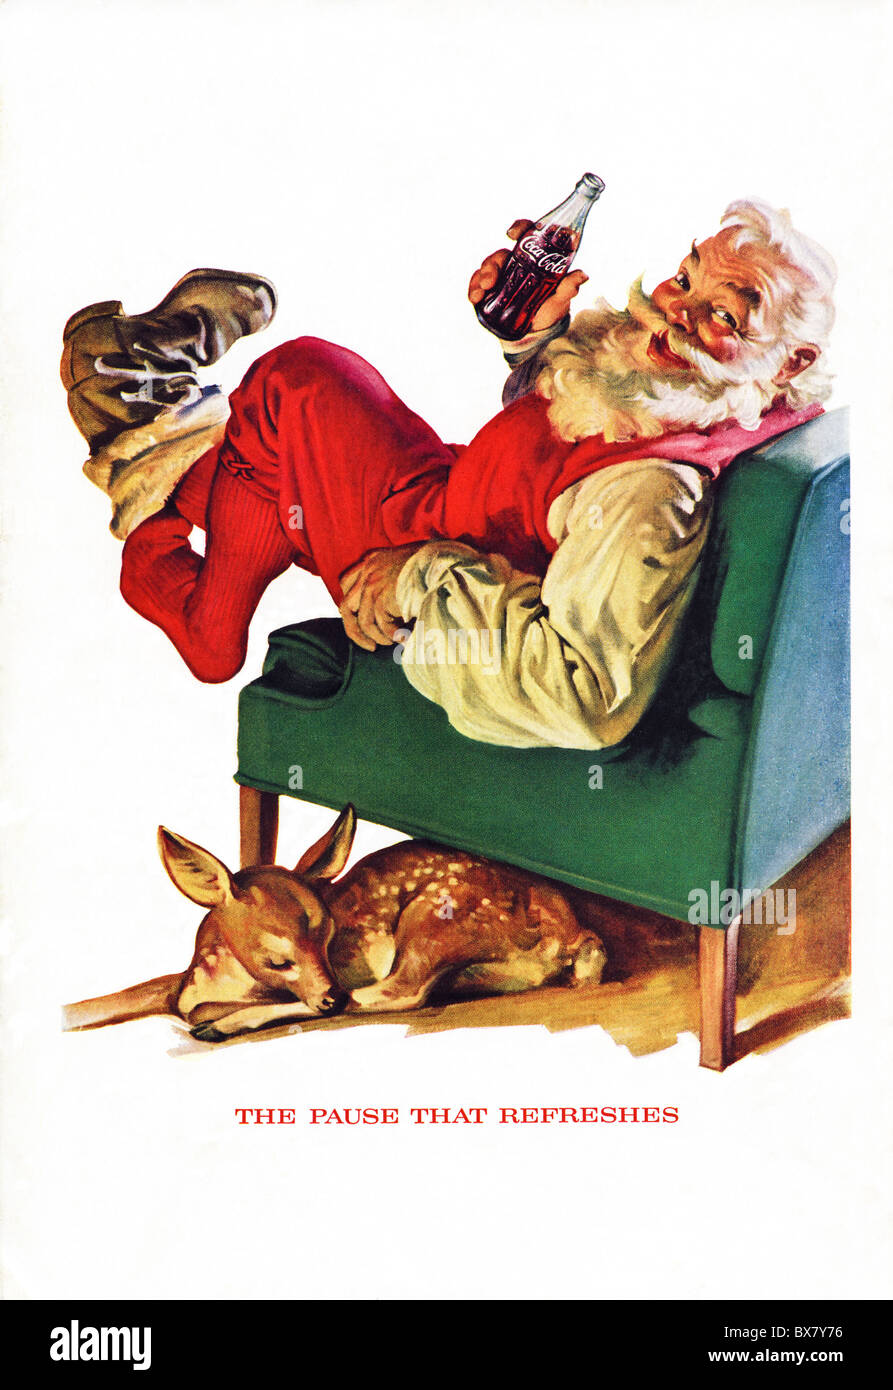 Classic Coca Cola advert in American magazine featuring colour illustration of Santa Father Christmas dated December1958 - Stock Image